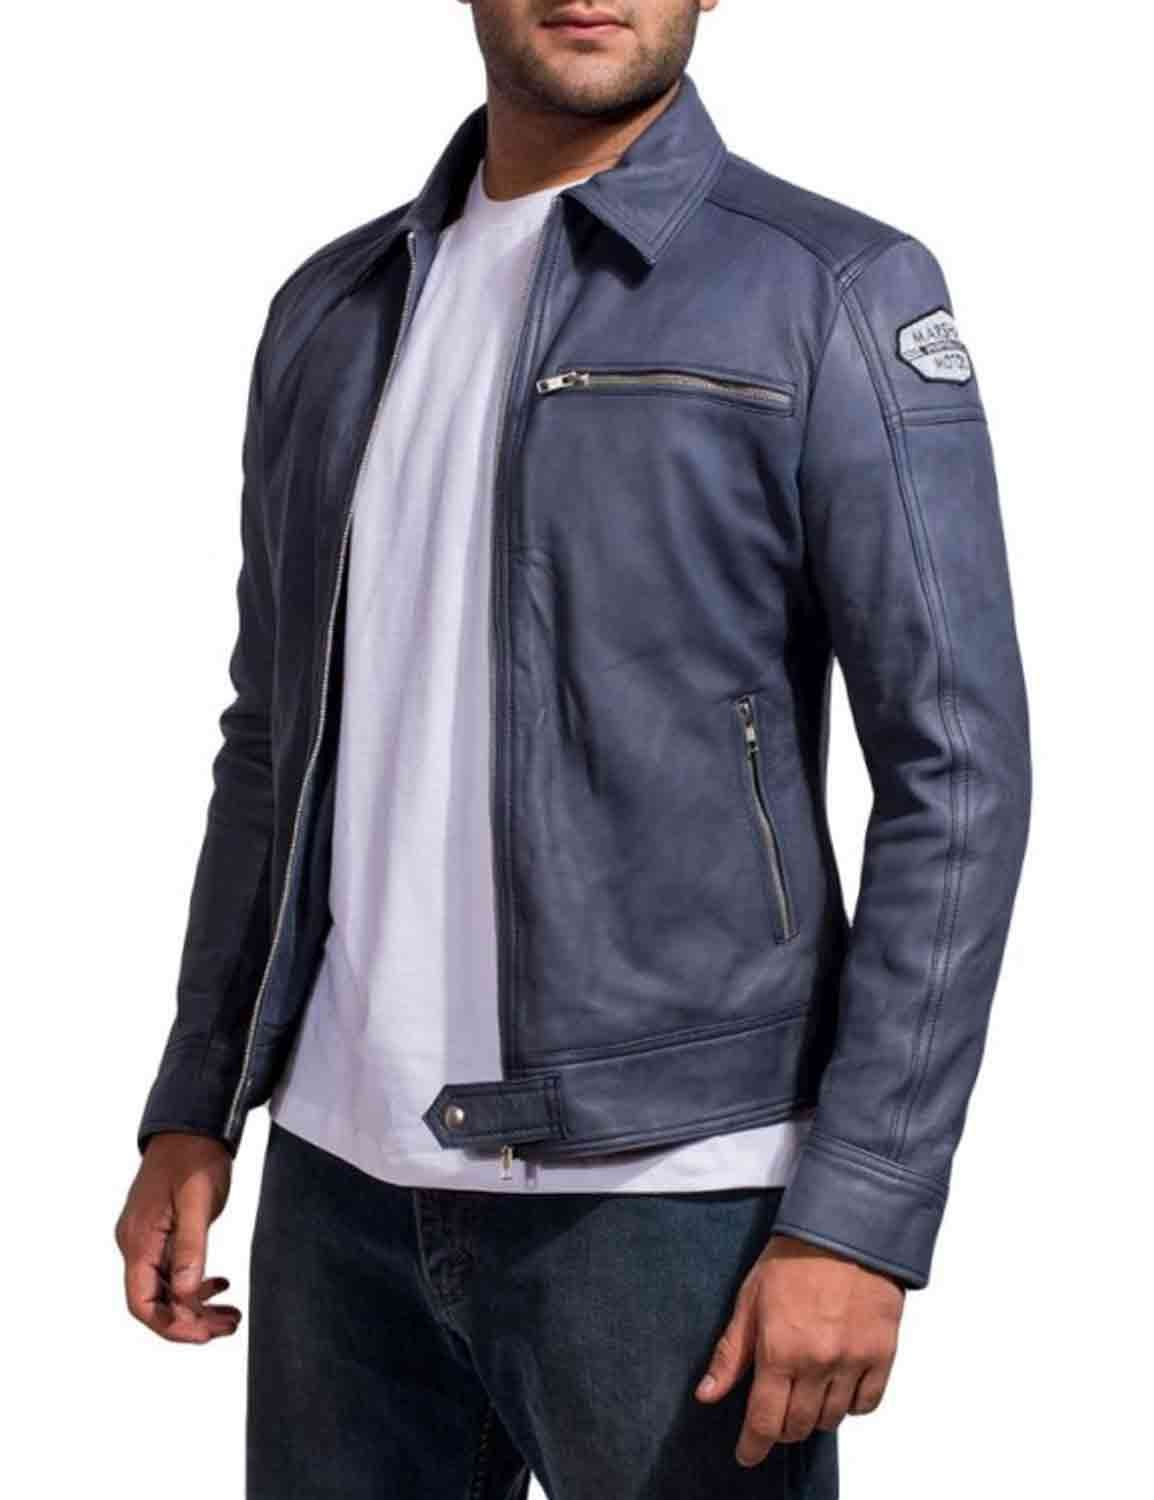 61b6ecdc0a This Need for Speed Jacket is a precisely made replica outfit worn by actor  Aaron Paul in the movie, portraying as the star character Tobey Marshall.